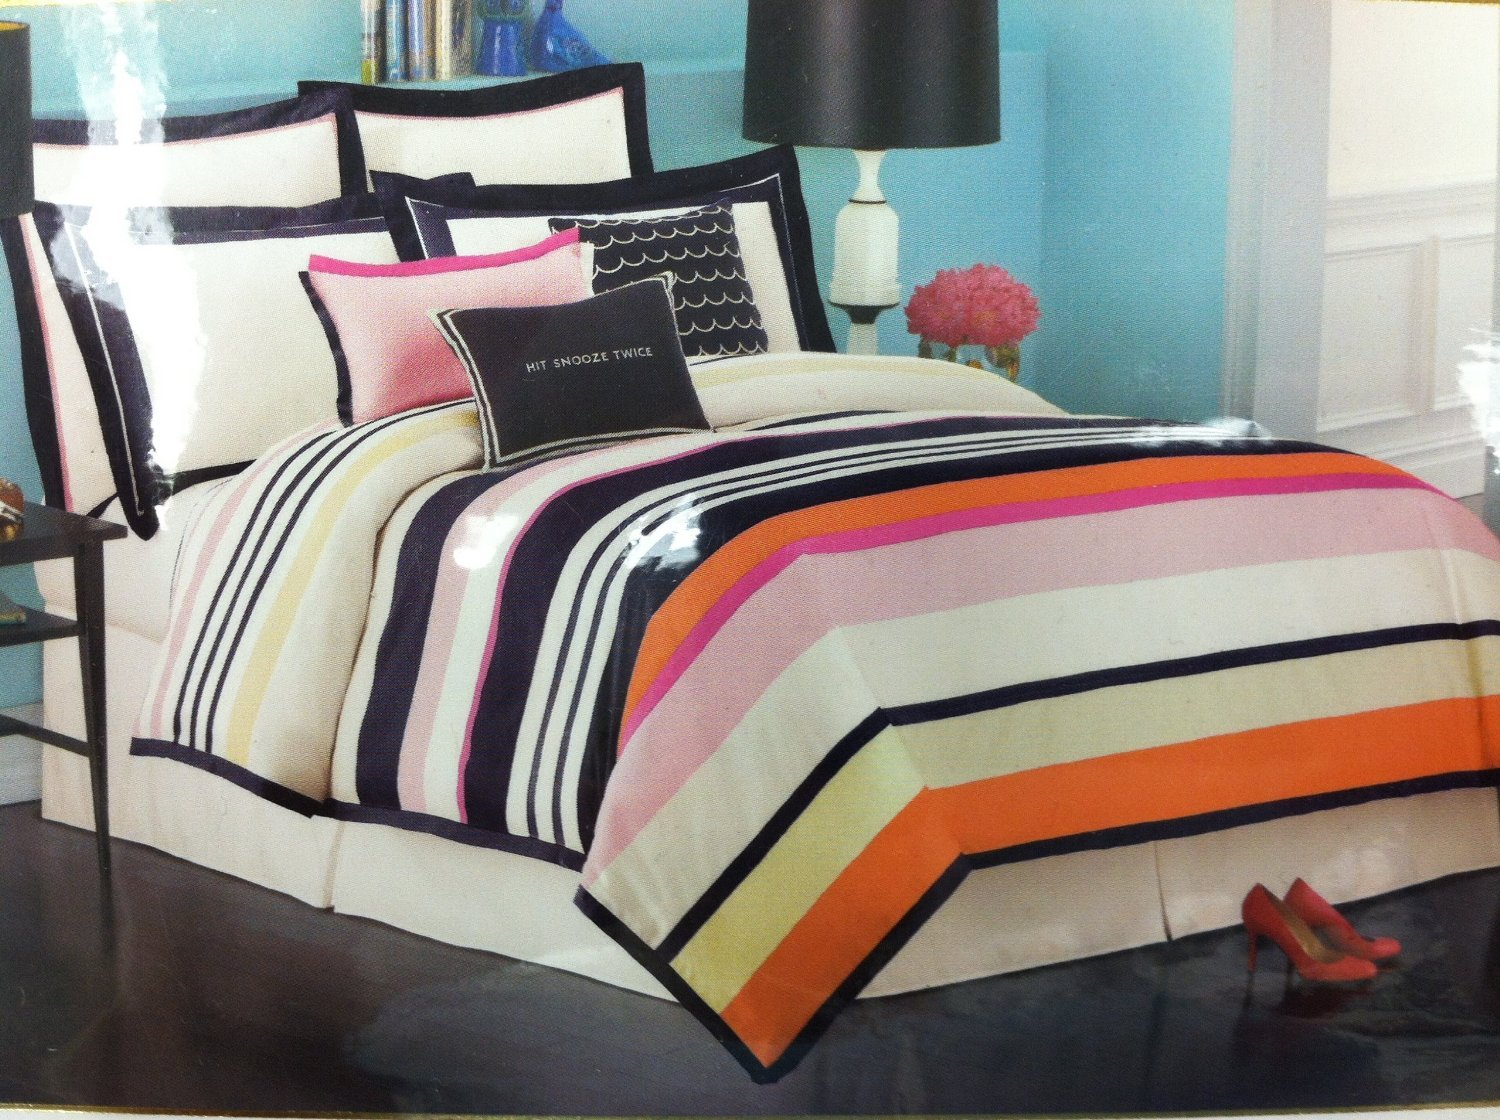 posie product in lipstick kate pool spade heatherly bedroom design stella bedheads dot